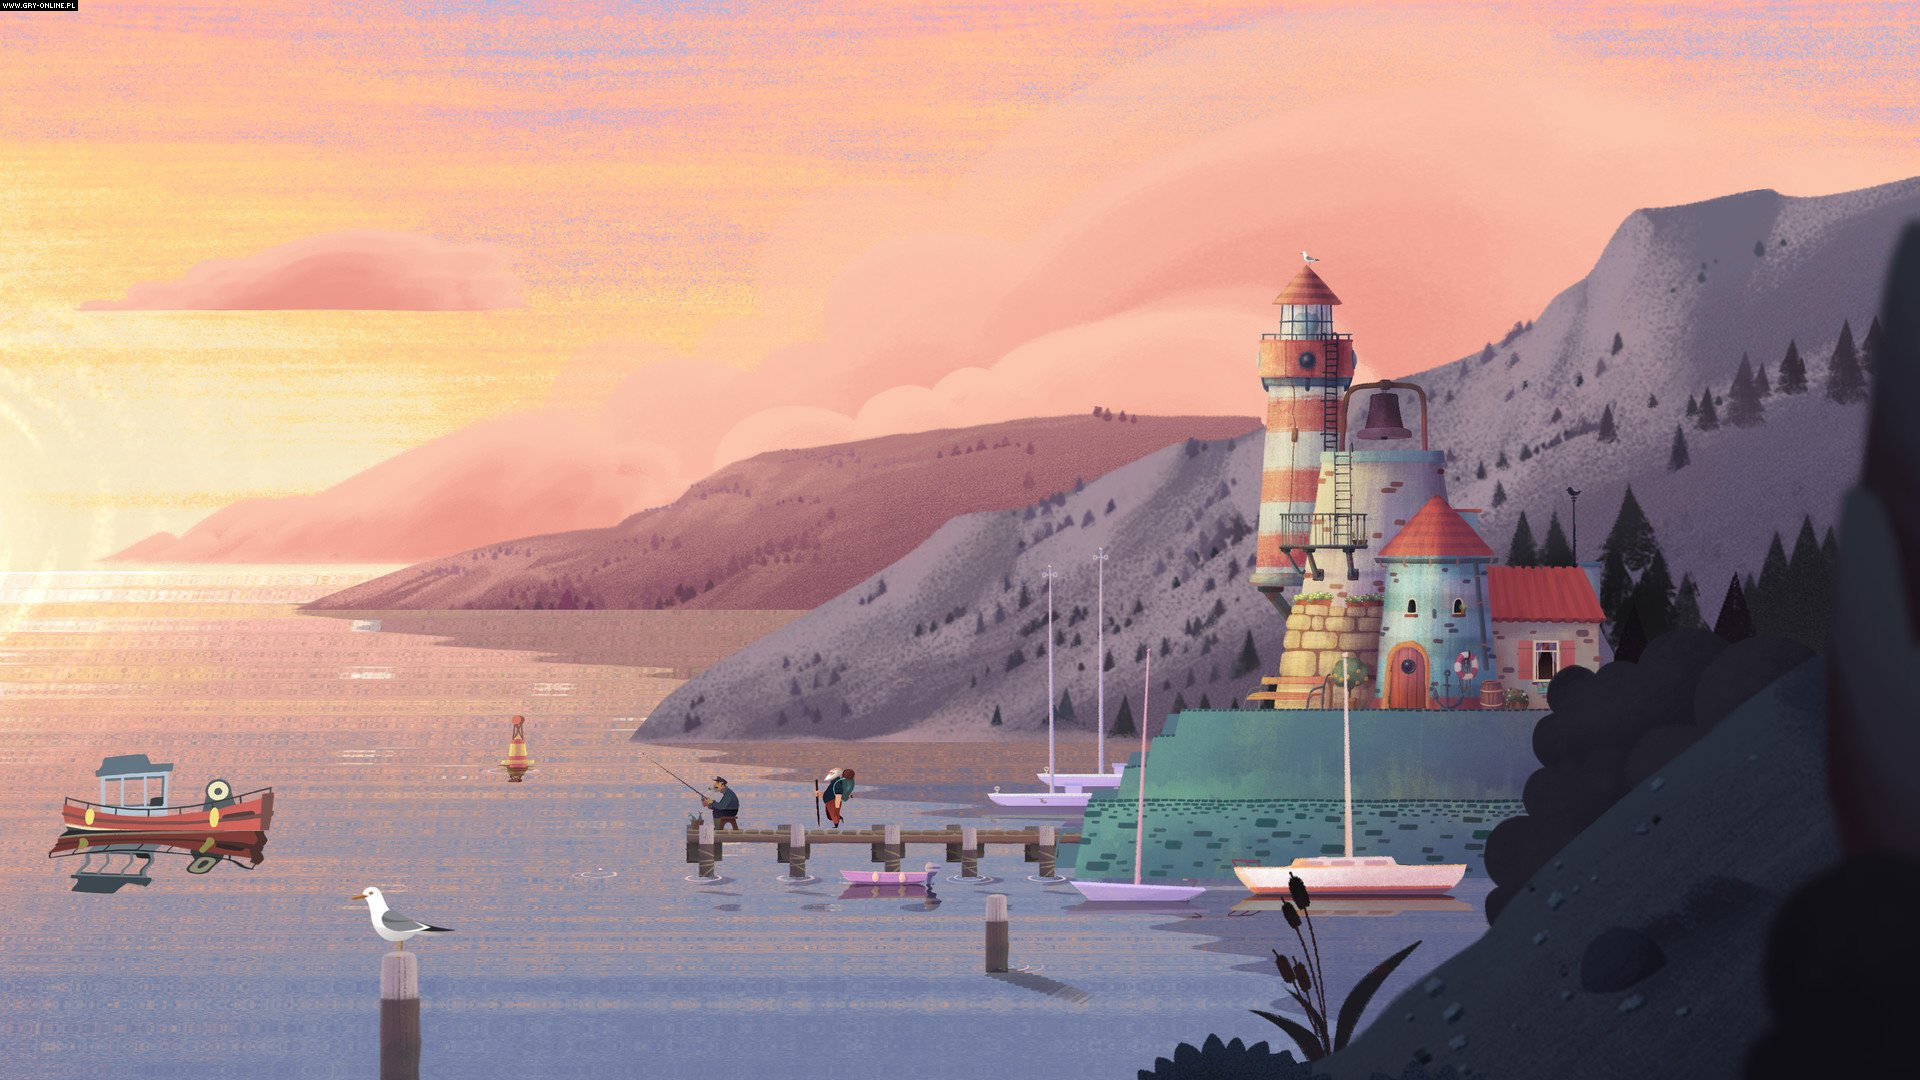 Old Man's Journey PC Games Image 9/9, Broken Rules